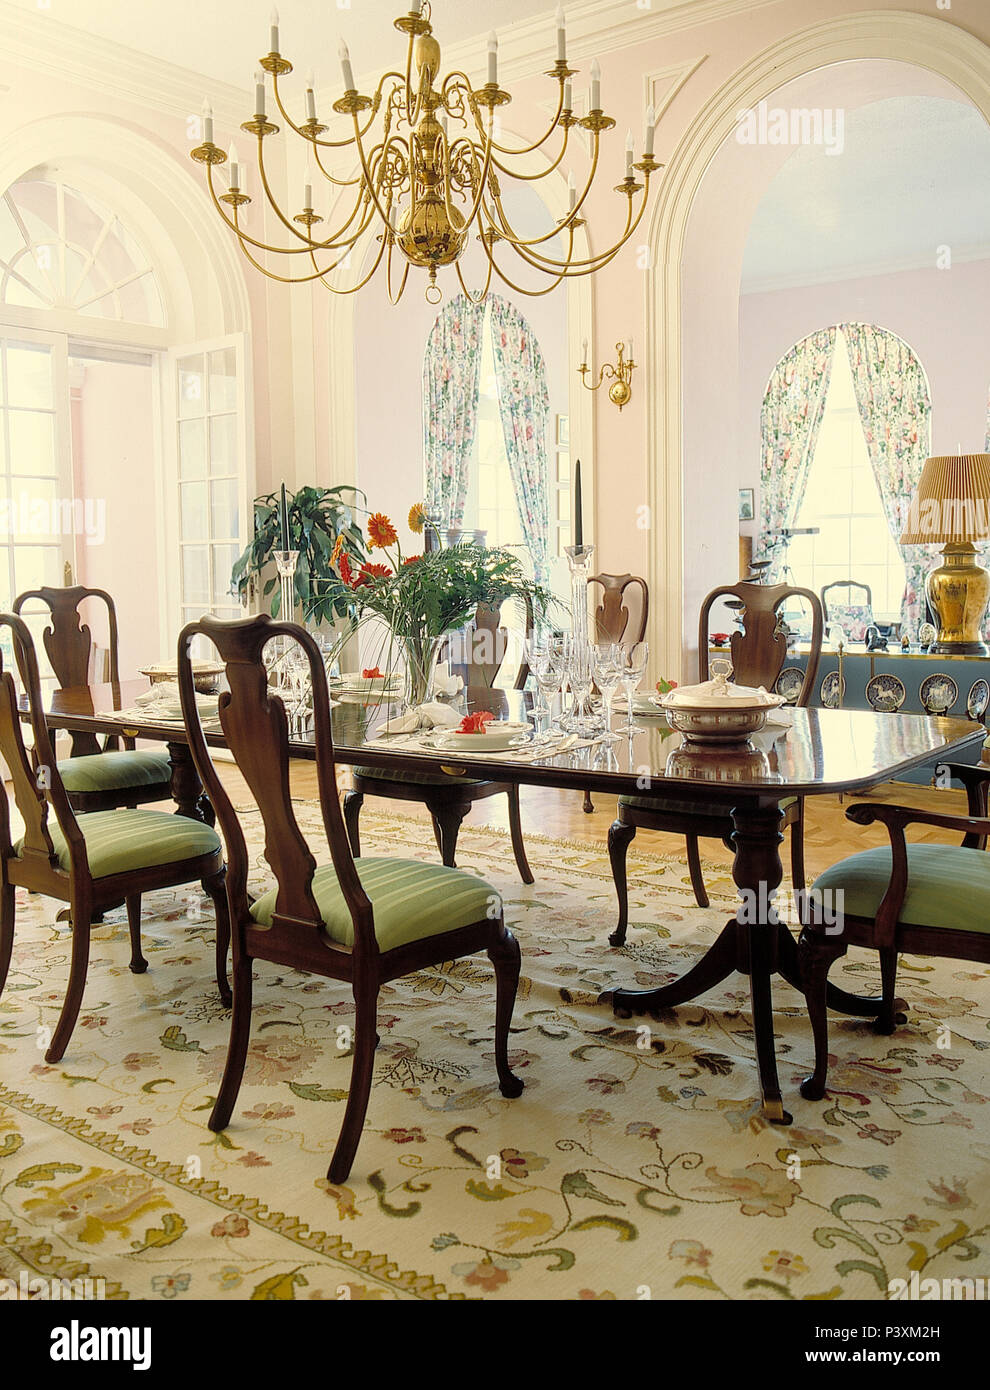 Chandelier Over Antique Mahogany Dining Table And Chairs In ...